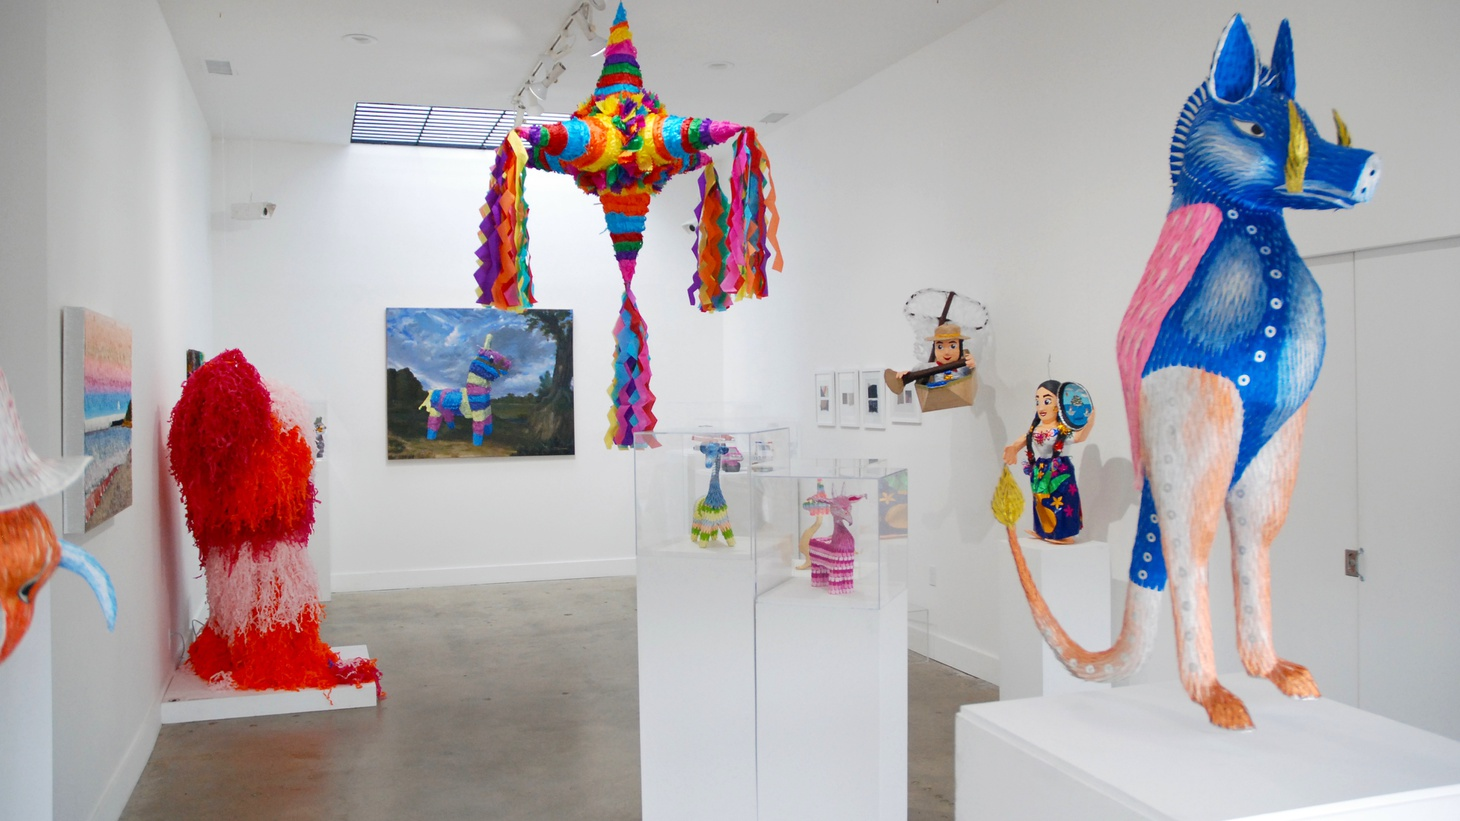 Piñatas are creatively designed and put together by hand — with love and care. But we also ddiscard these beautiful objects. That's according to Emily Zaiden, curator of LA's first-ever piñata exhibit.